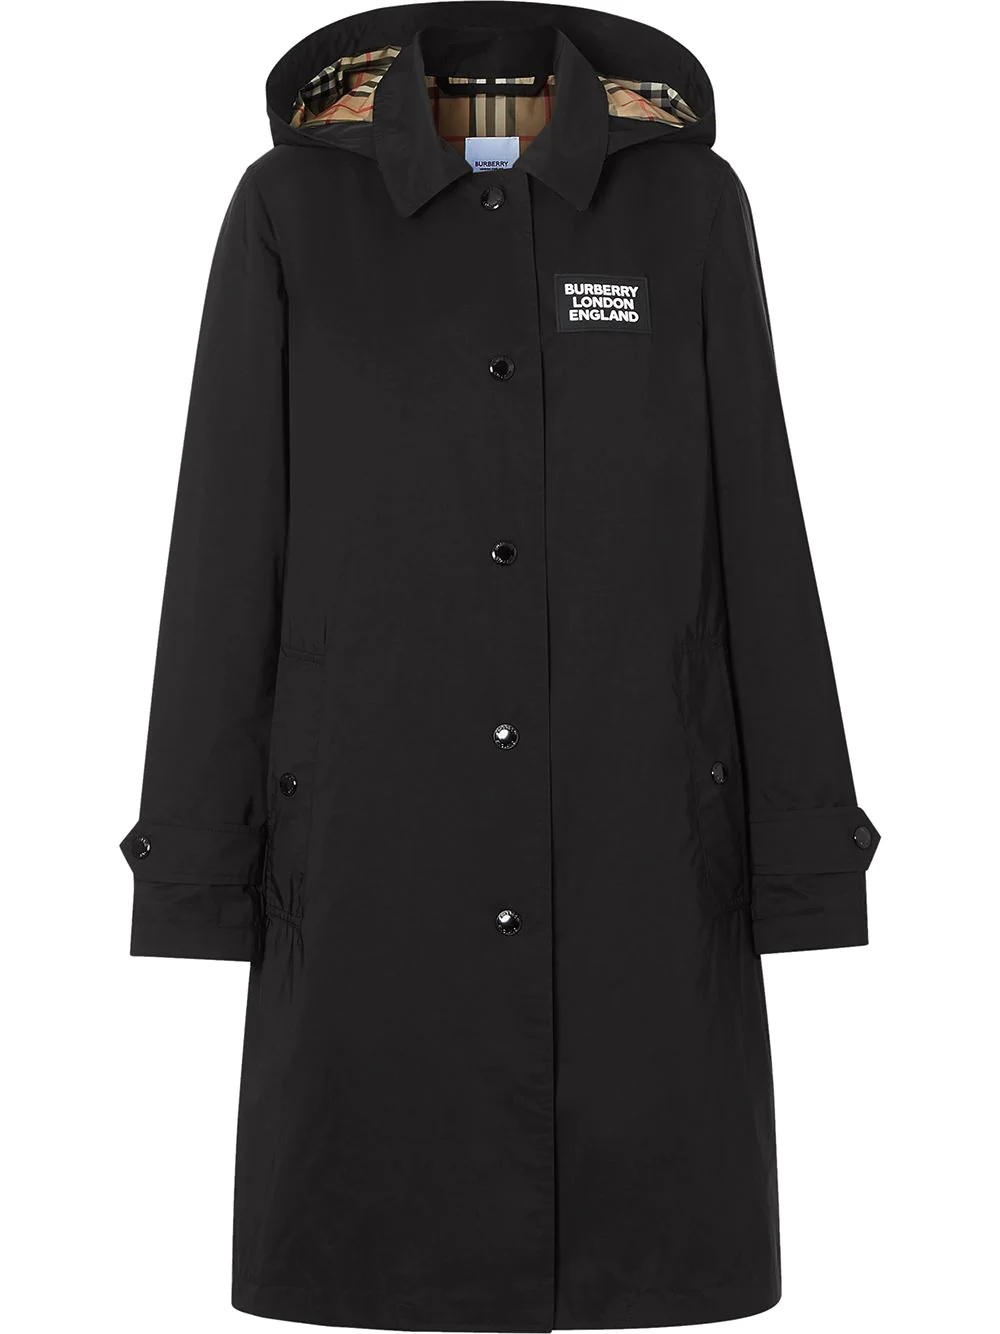 straight cut black coat featuring a detachable hood featuring classic collar BURBERRY |  | 8022731-OXCLOSEA1189